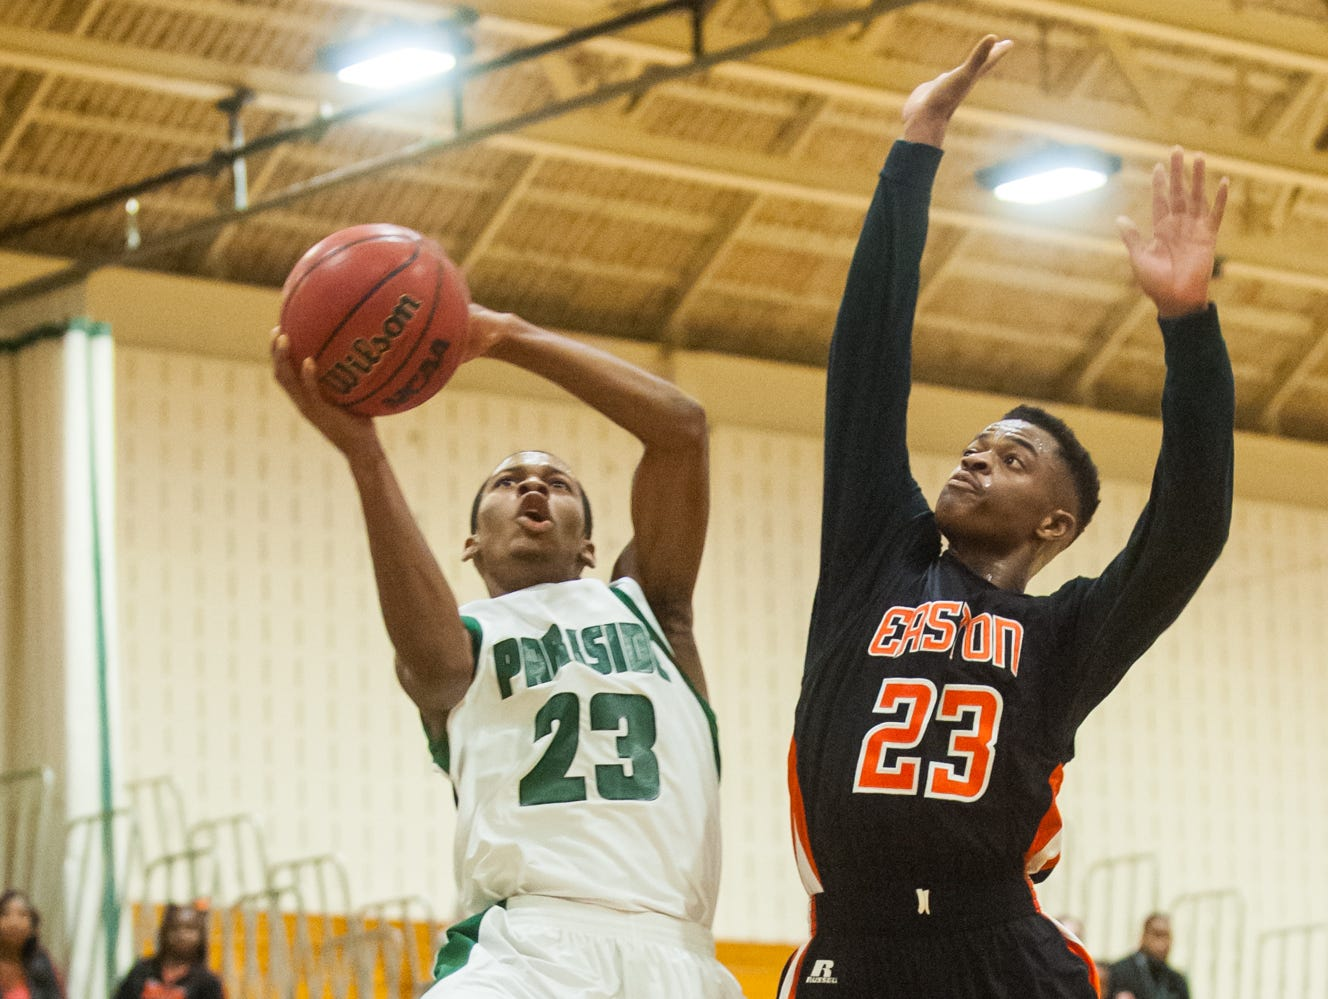 Parkside forward Juwan Williams takes a shot from the paint in the season opener against Easton on Friday night at Parkside.